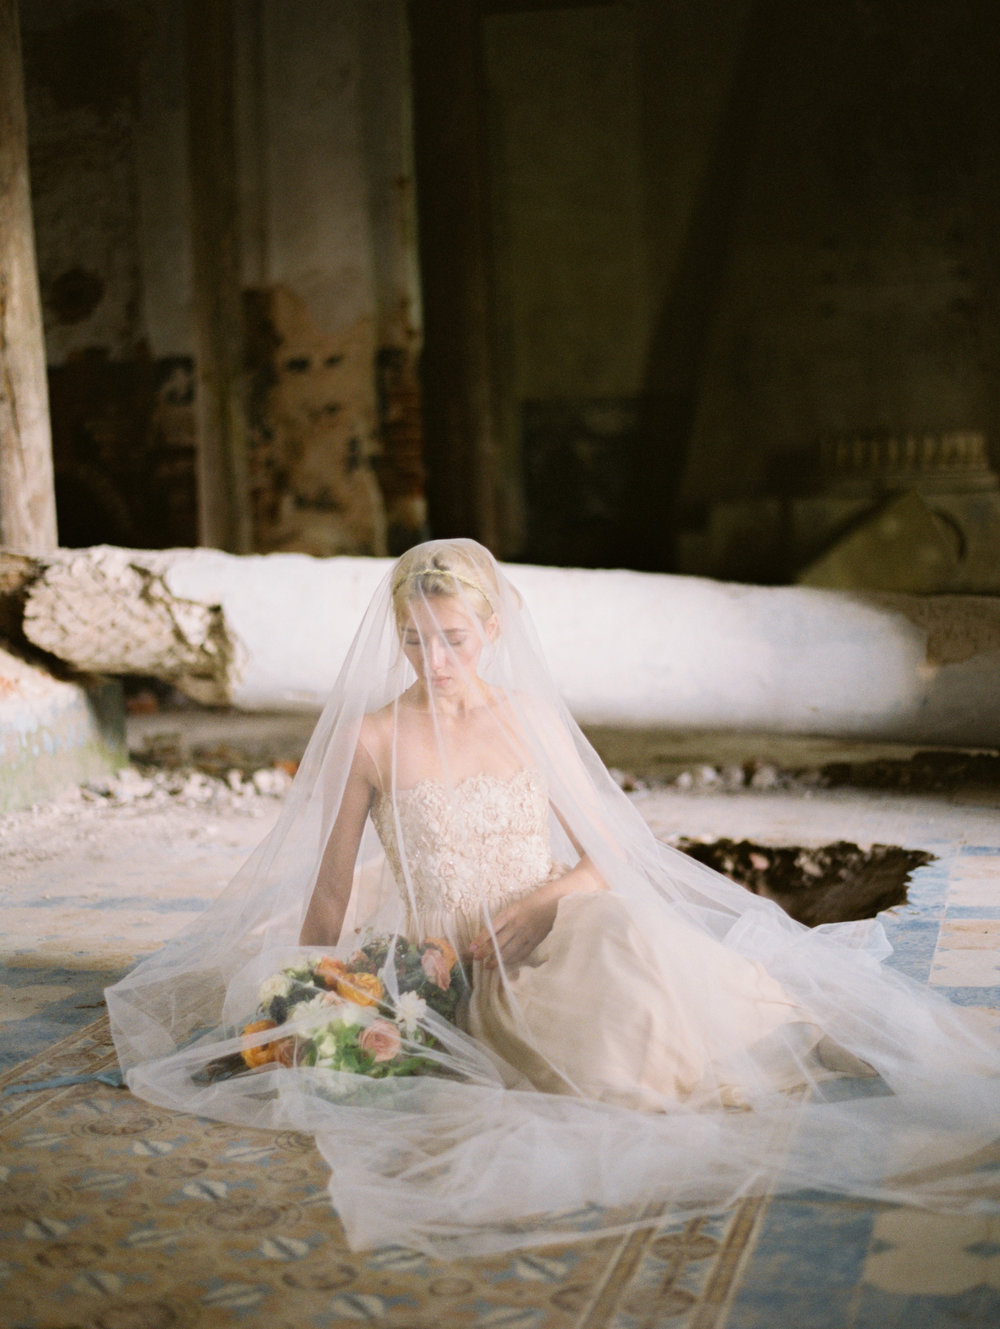 wedding-styled-shoot-russia-inspiration-elena-pavlova-photography-metamorphoses-orpheus-eurydice (40).jpg